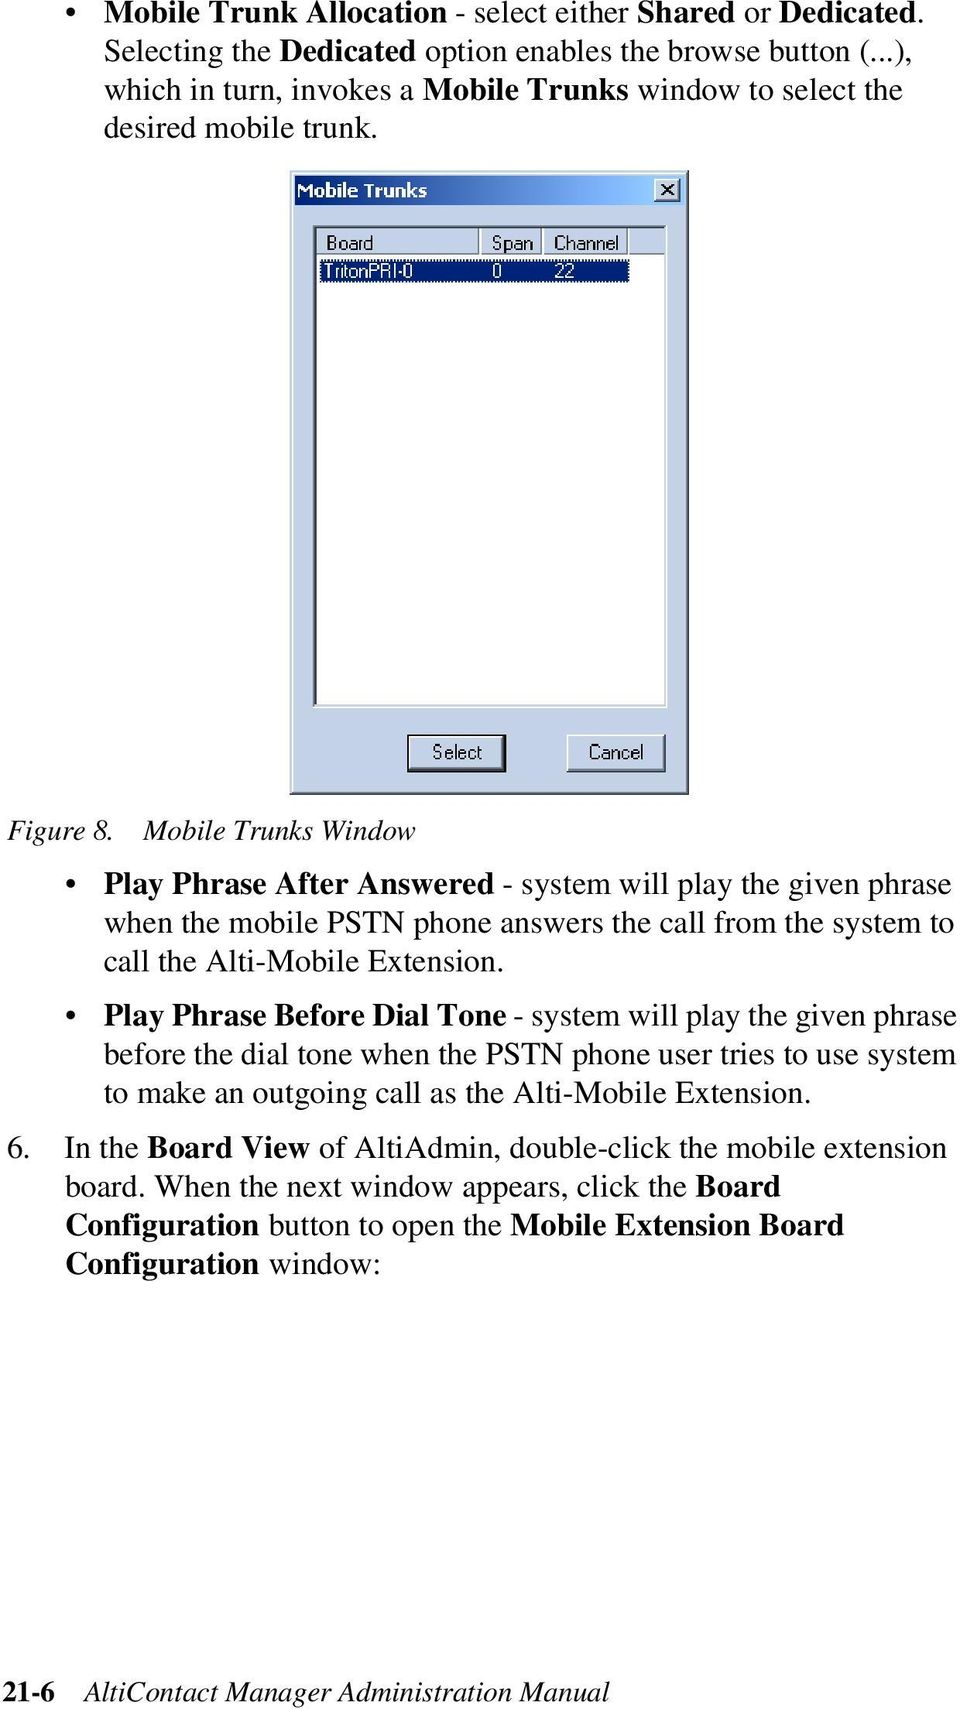 Mobile Trunks Window Play Phrase After Answered - system will play the given phrase when the mobile PSTN phone answers the call from the system to call the Alti-Mobile Extension.